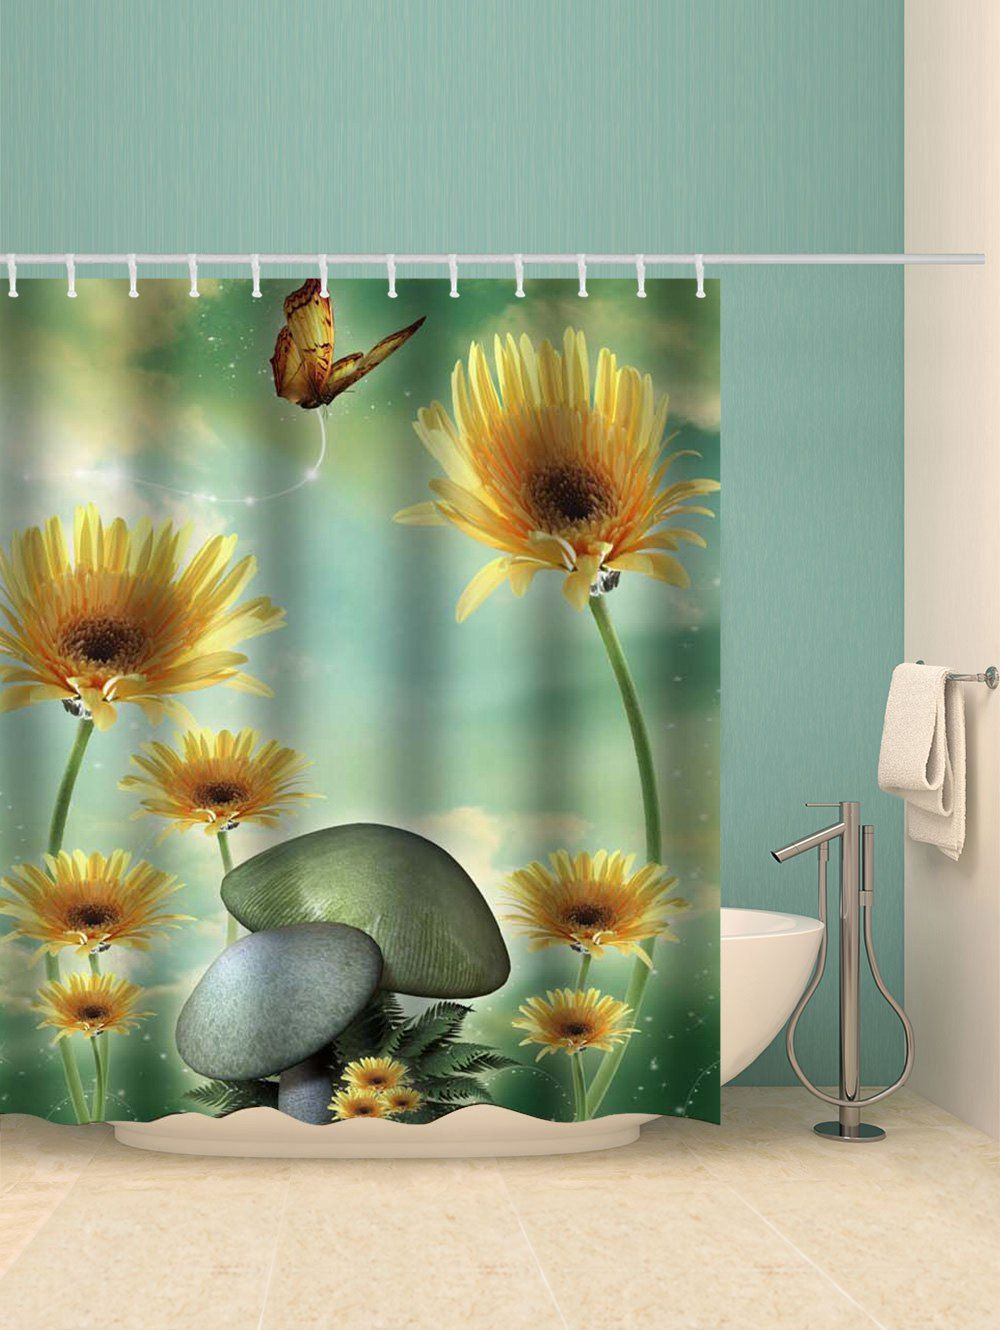 Mushroom Floral Pattern Shower Curtain Ad Ad Floral